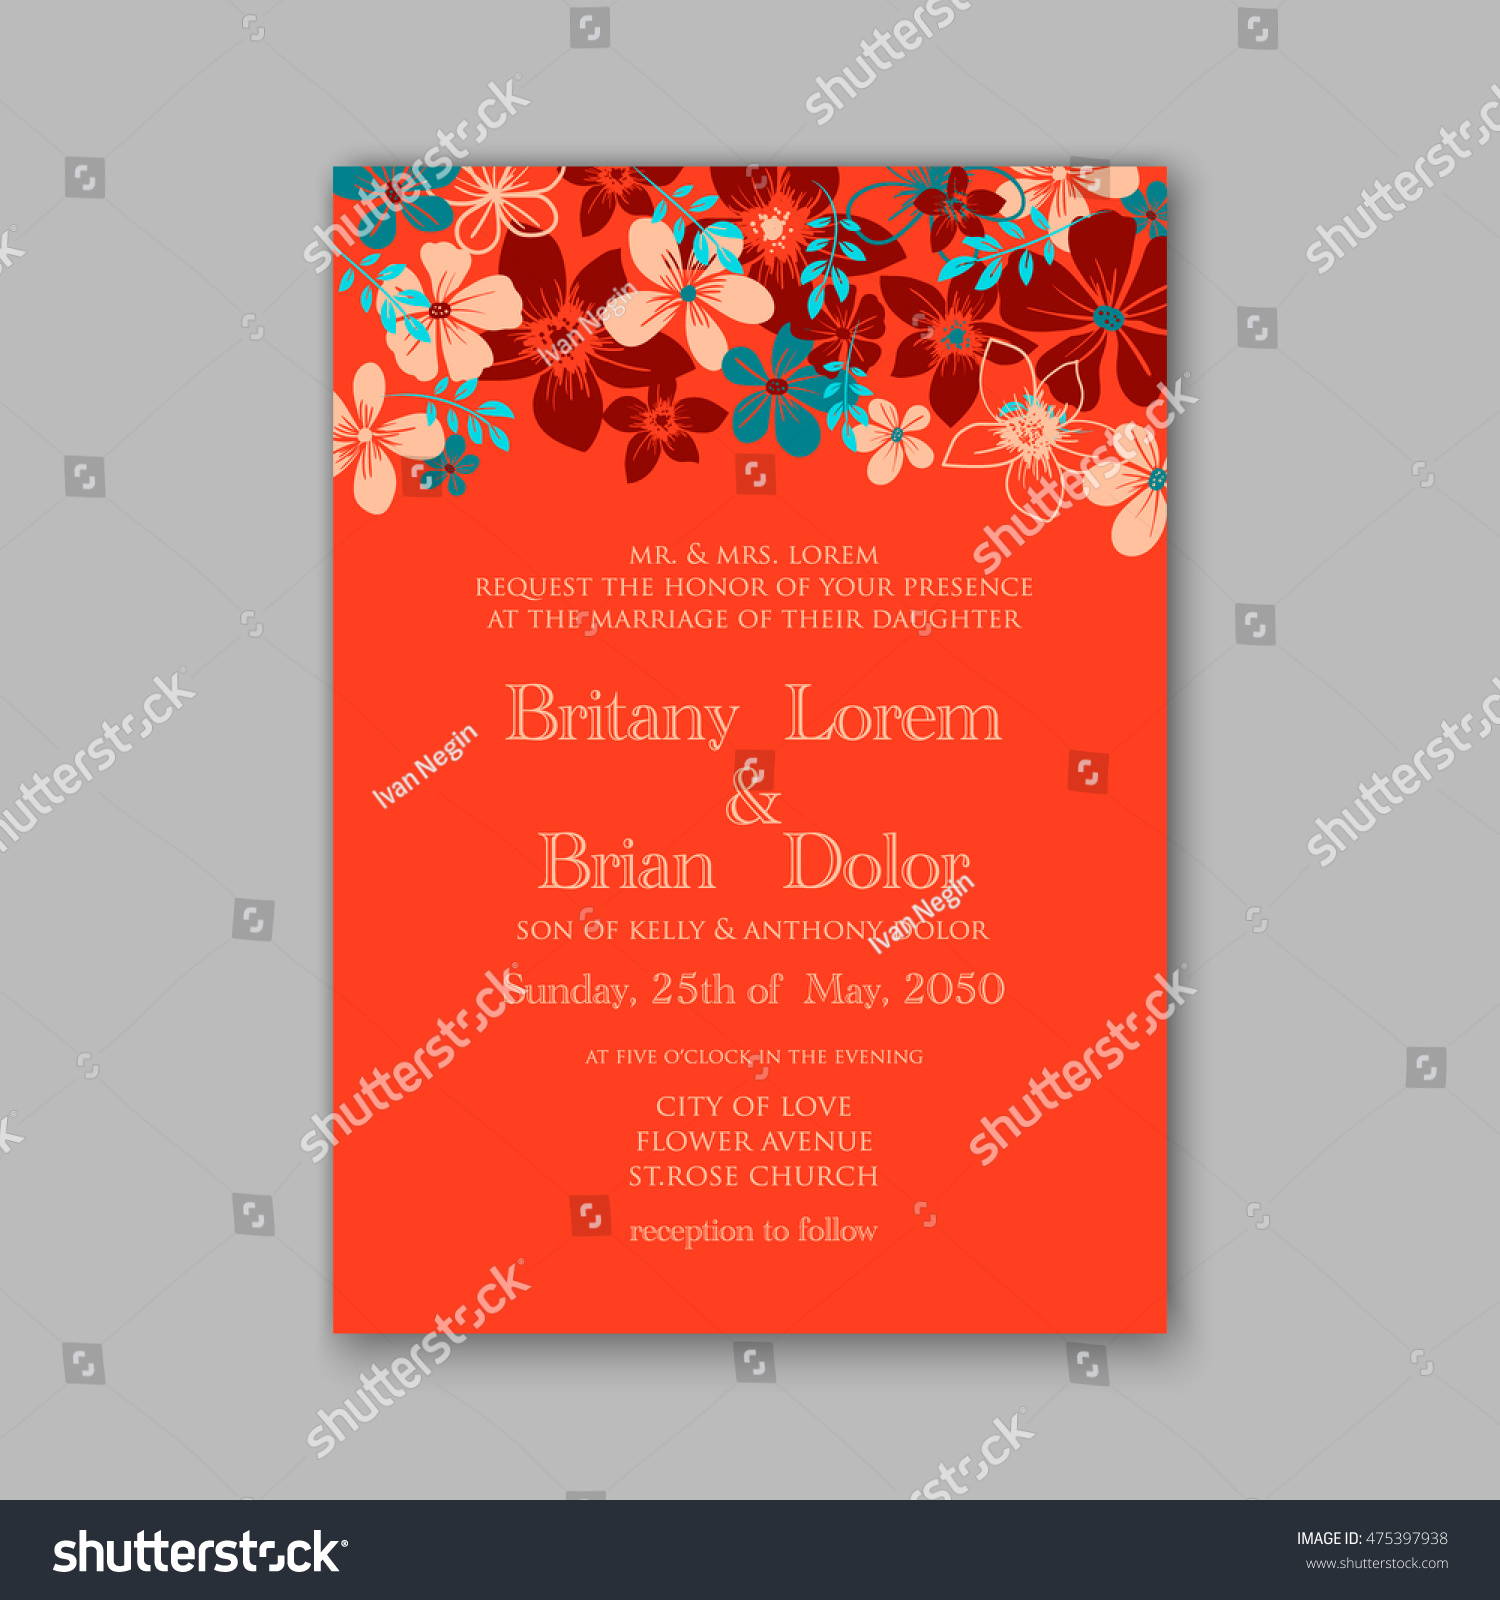 Wedding Invitation Template Card Tropical Floral Stock Vector HD ...